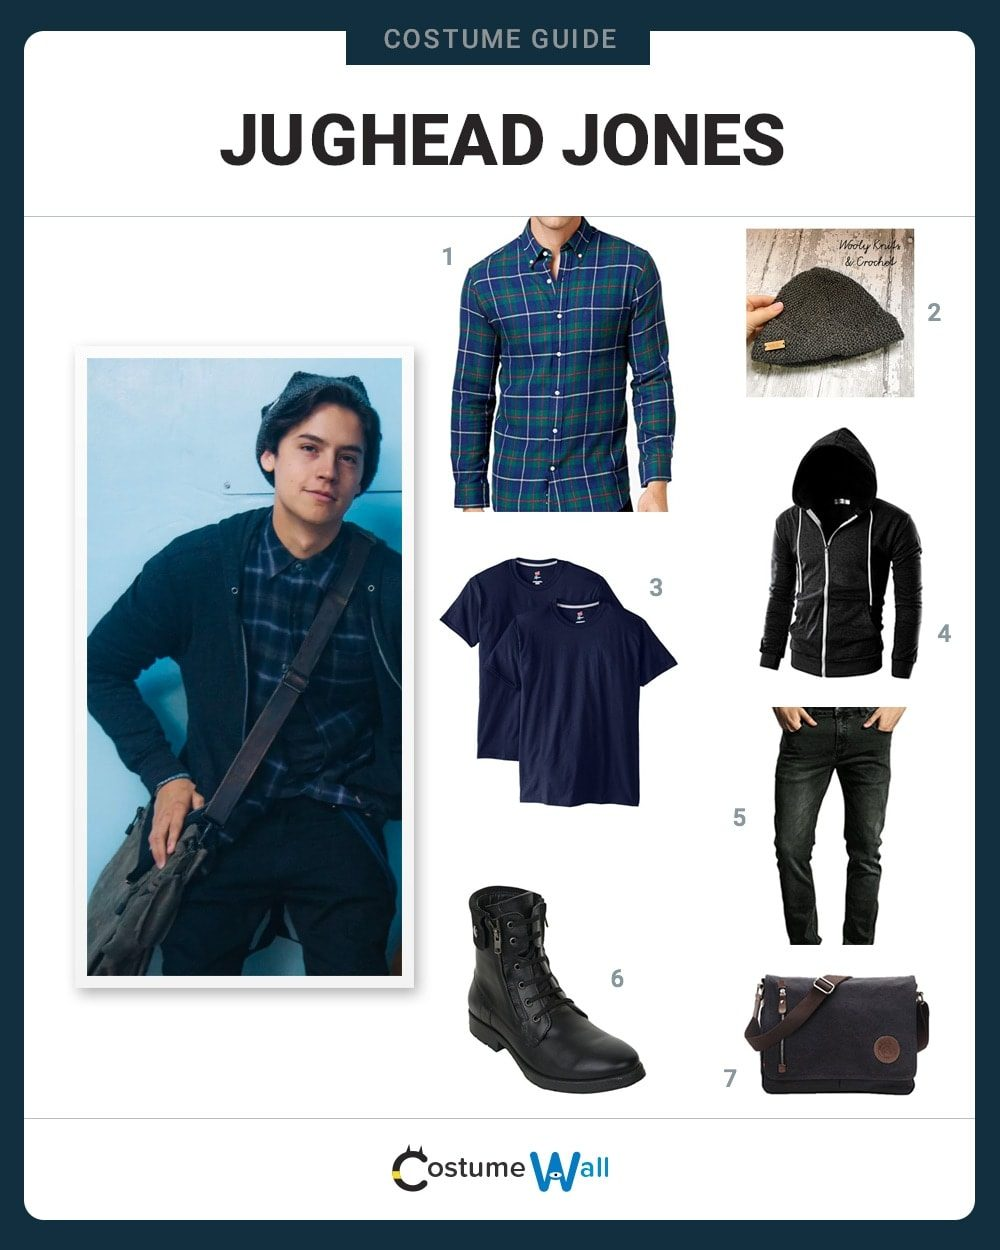 Jughead Jones Costume Guide